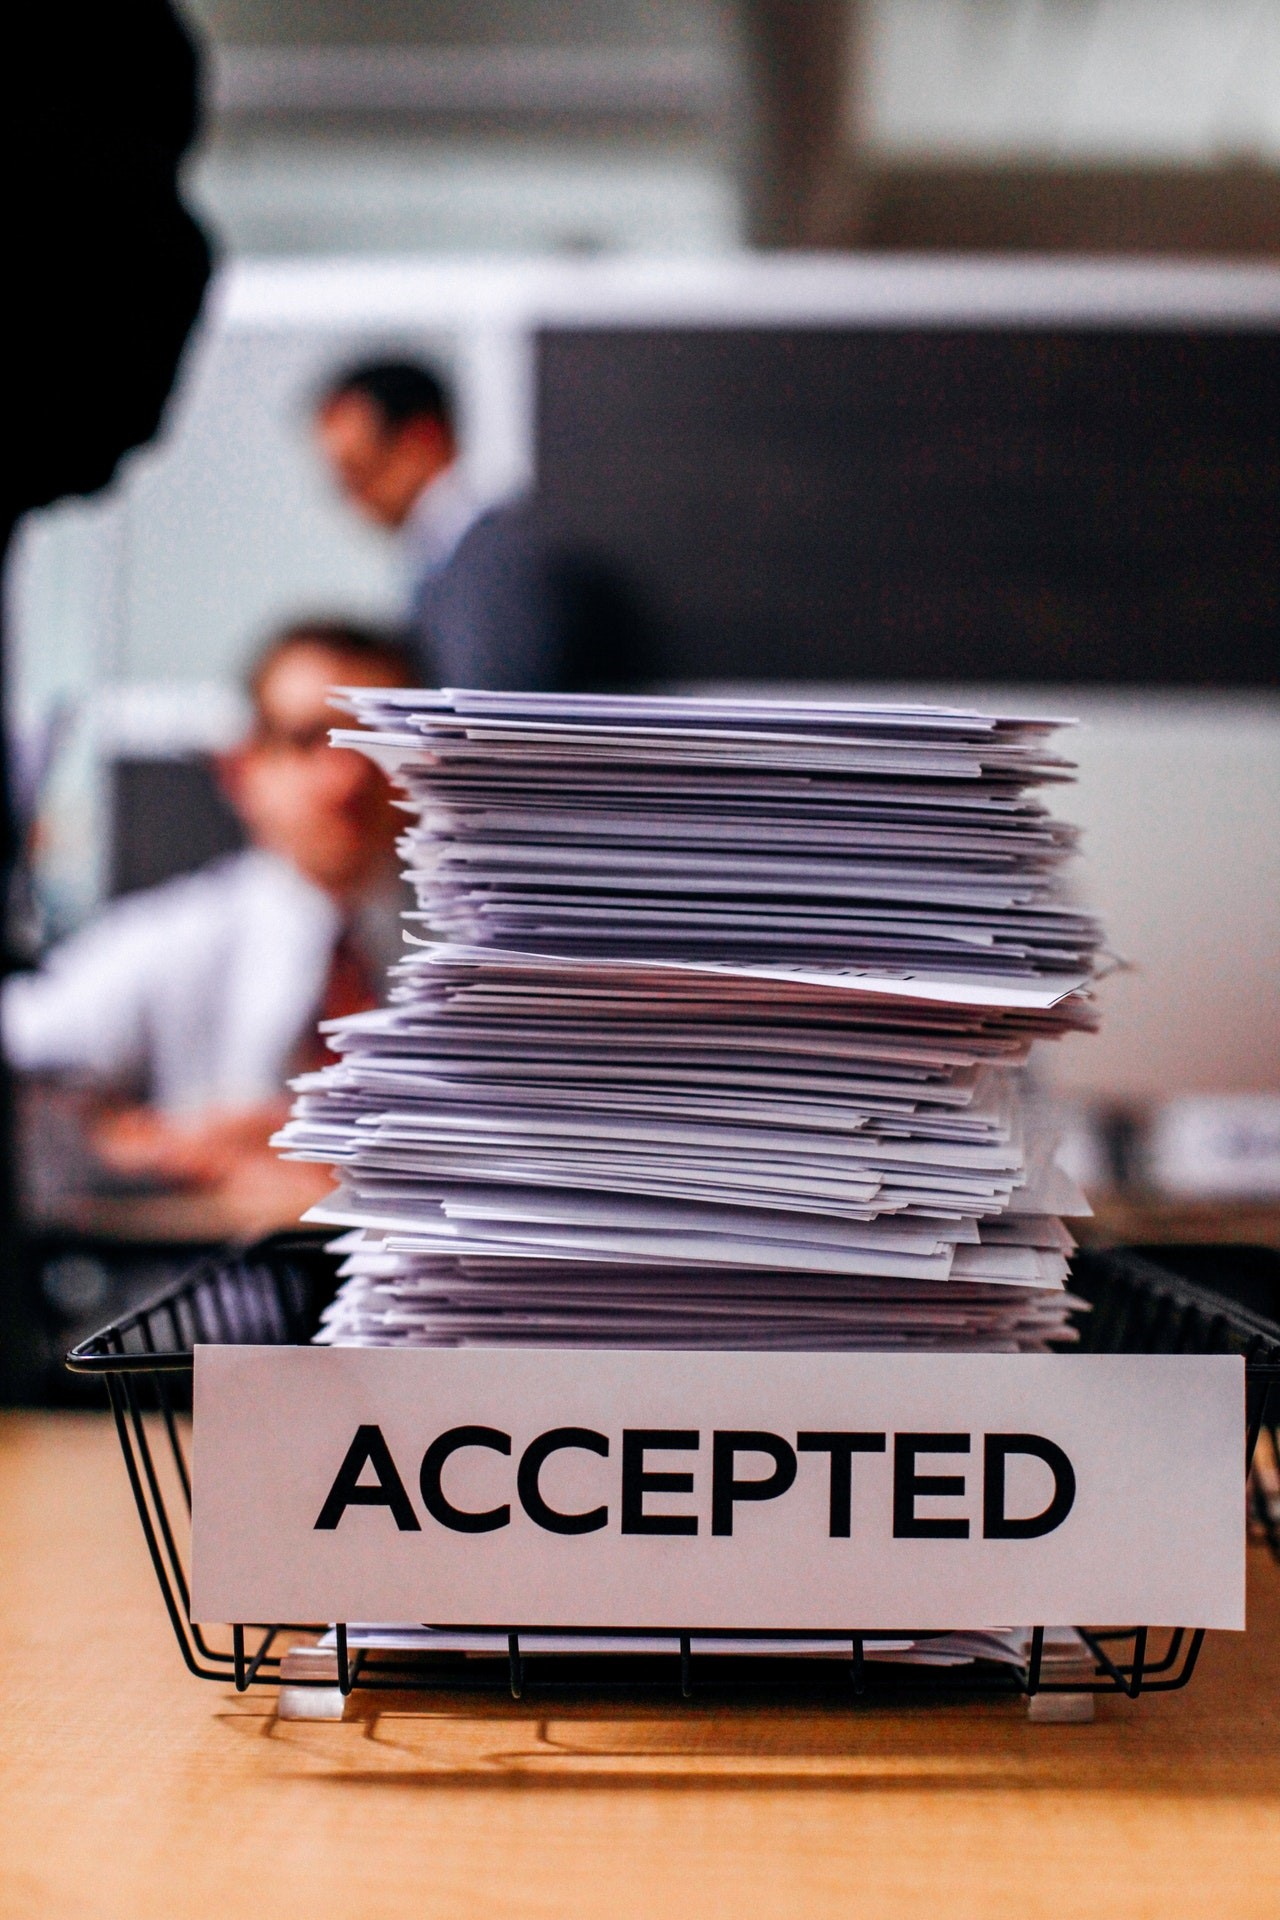 business document software - documents piled up